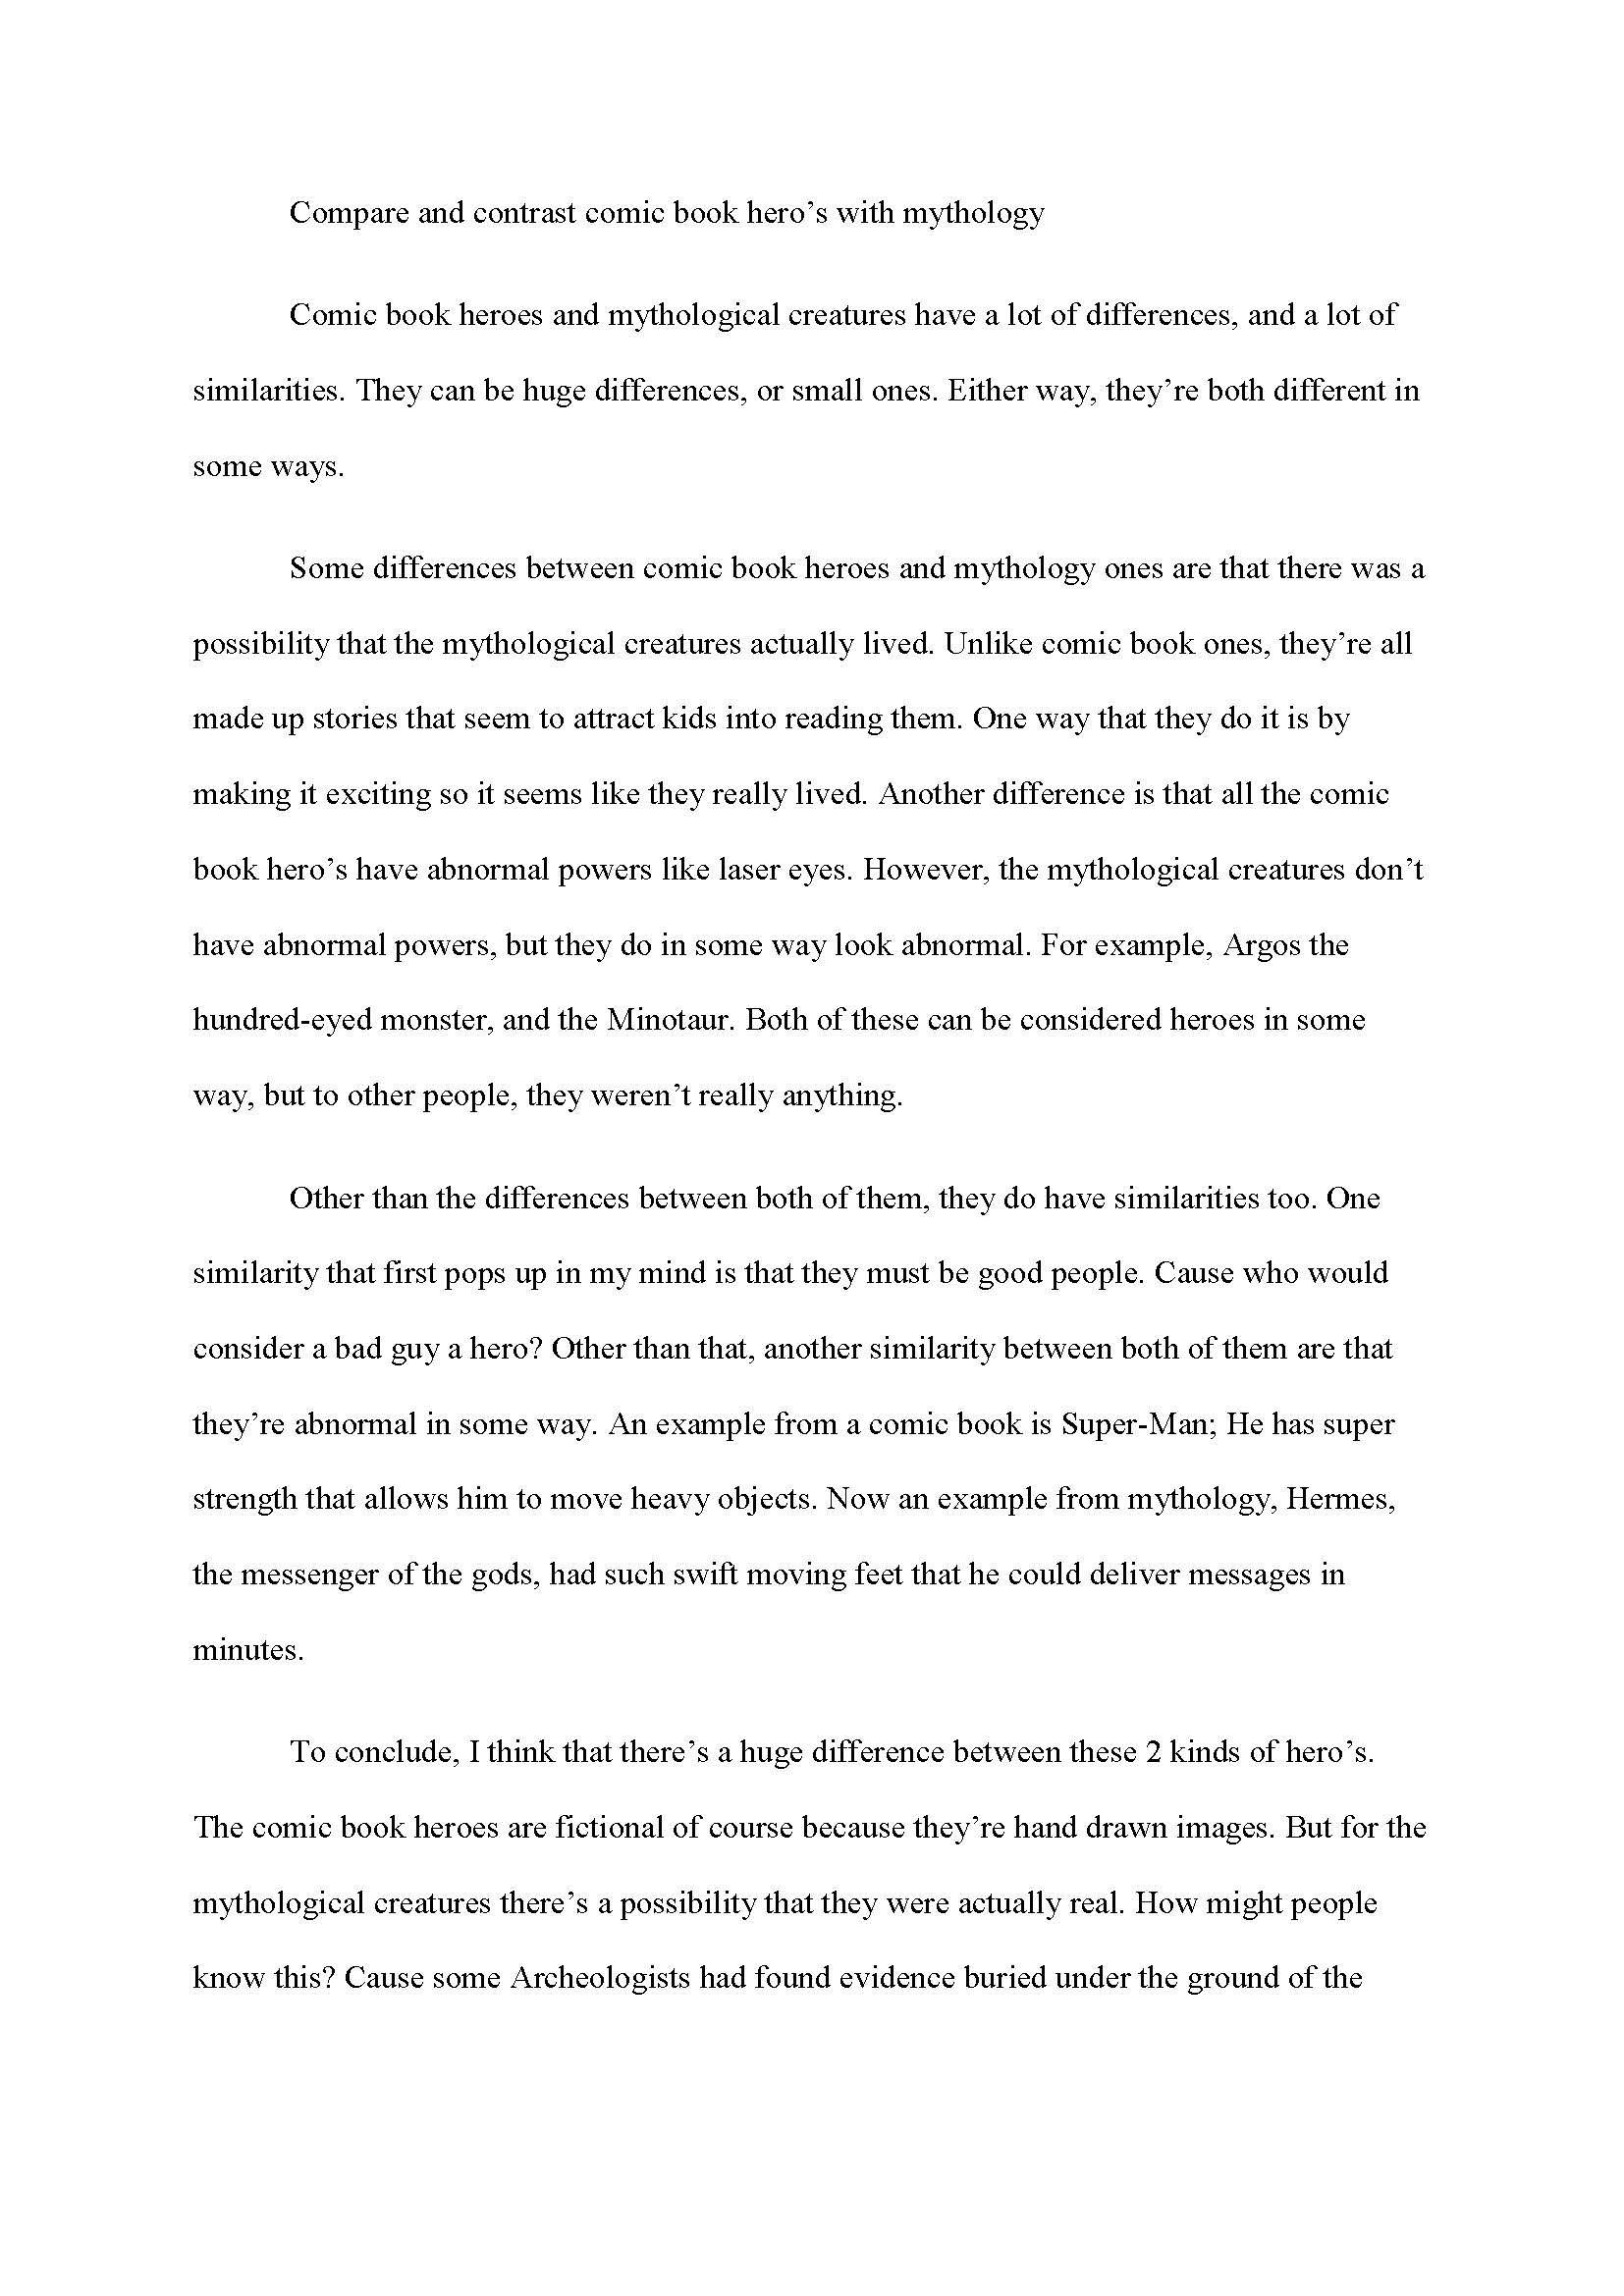 001 Exceptional Compare And Contrast Essay Example College Picture  For Topic Outline